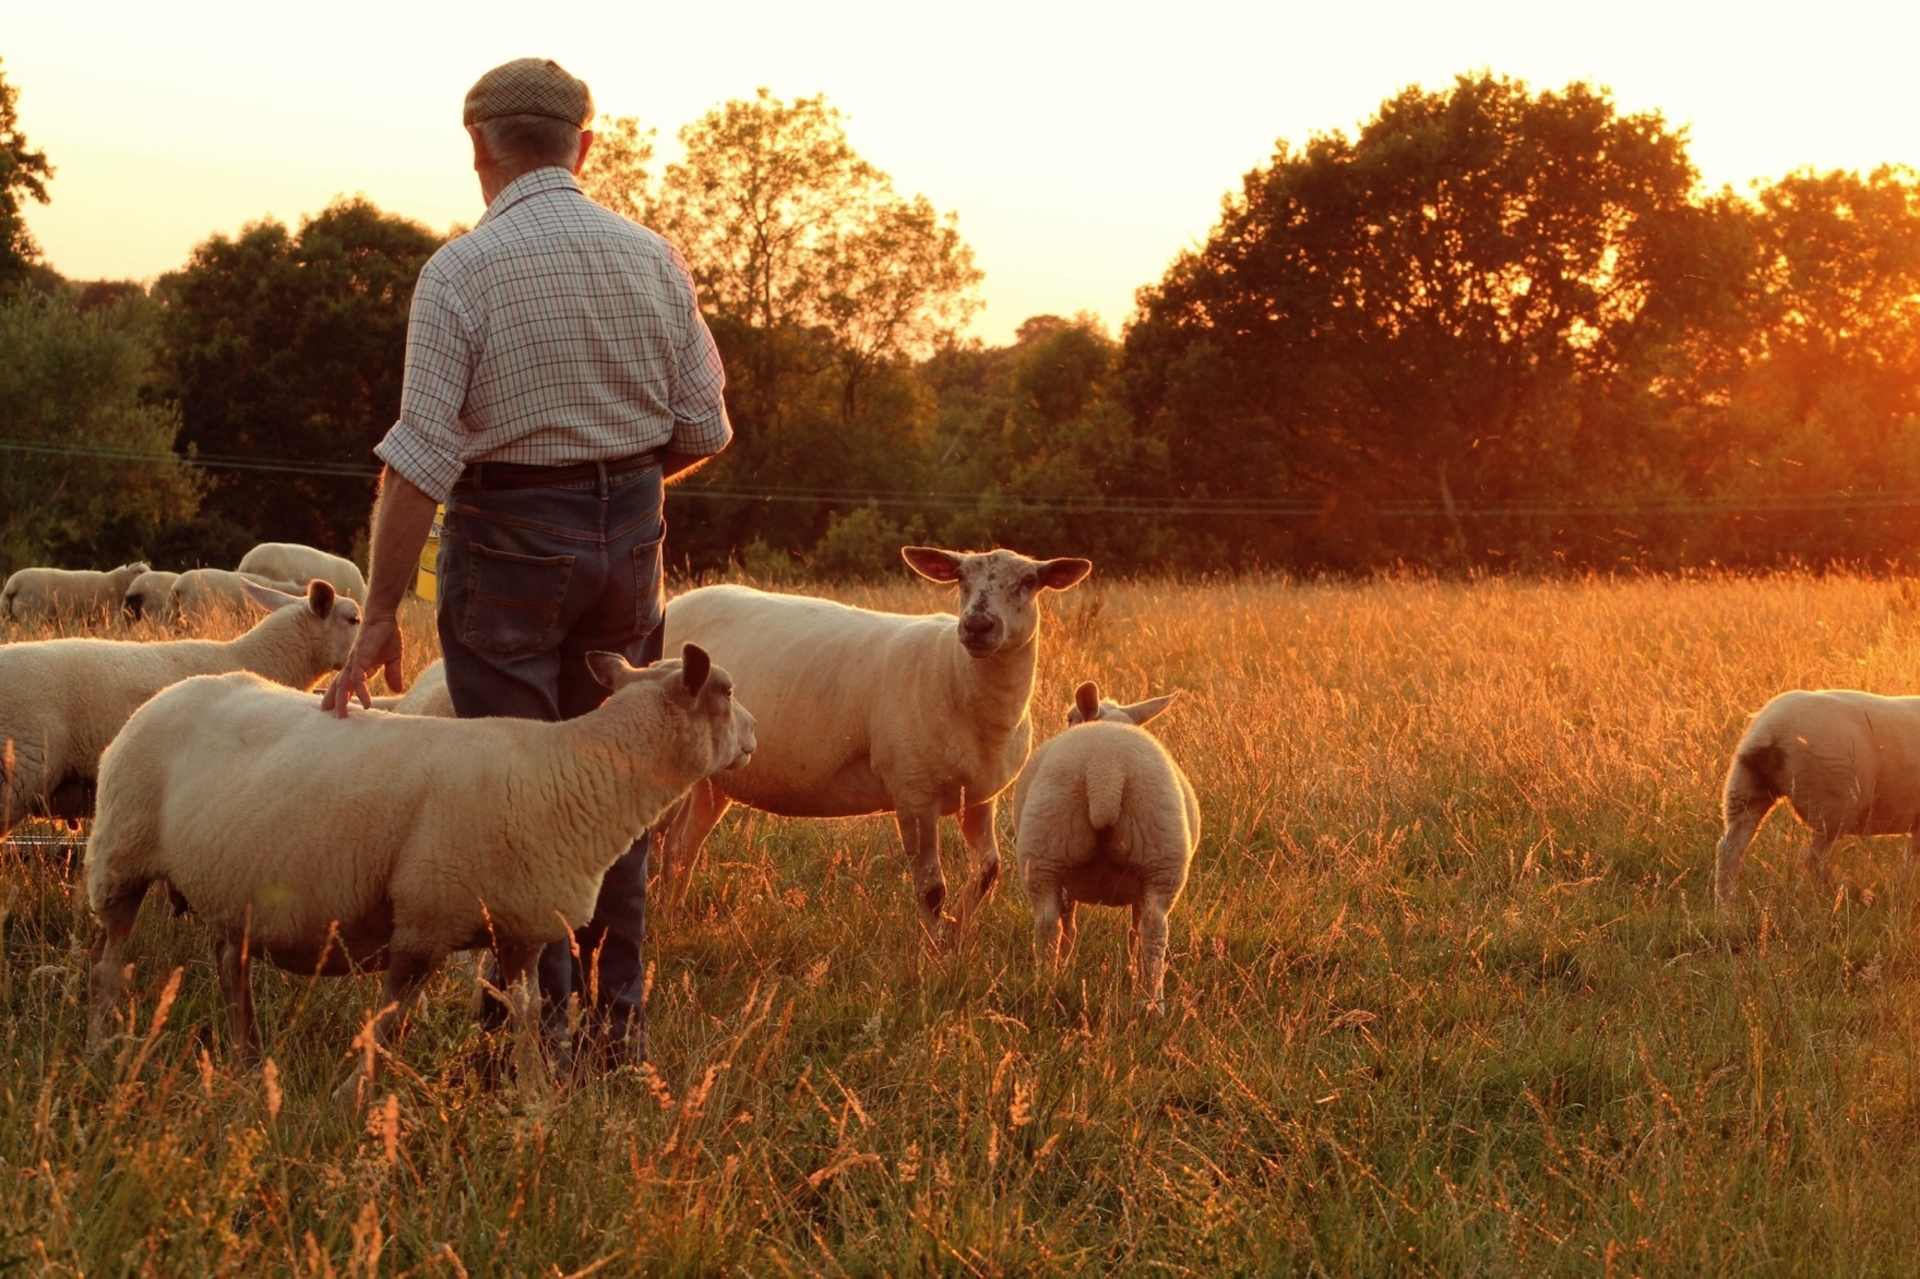 Feeding time. The farmer tending to his sheep/flock at the golden hour